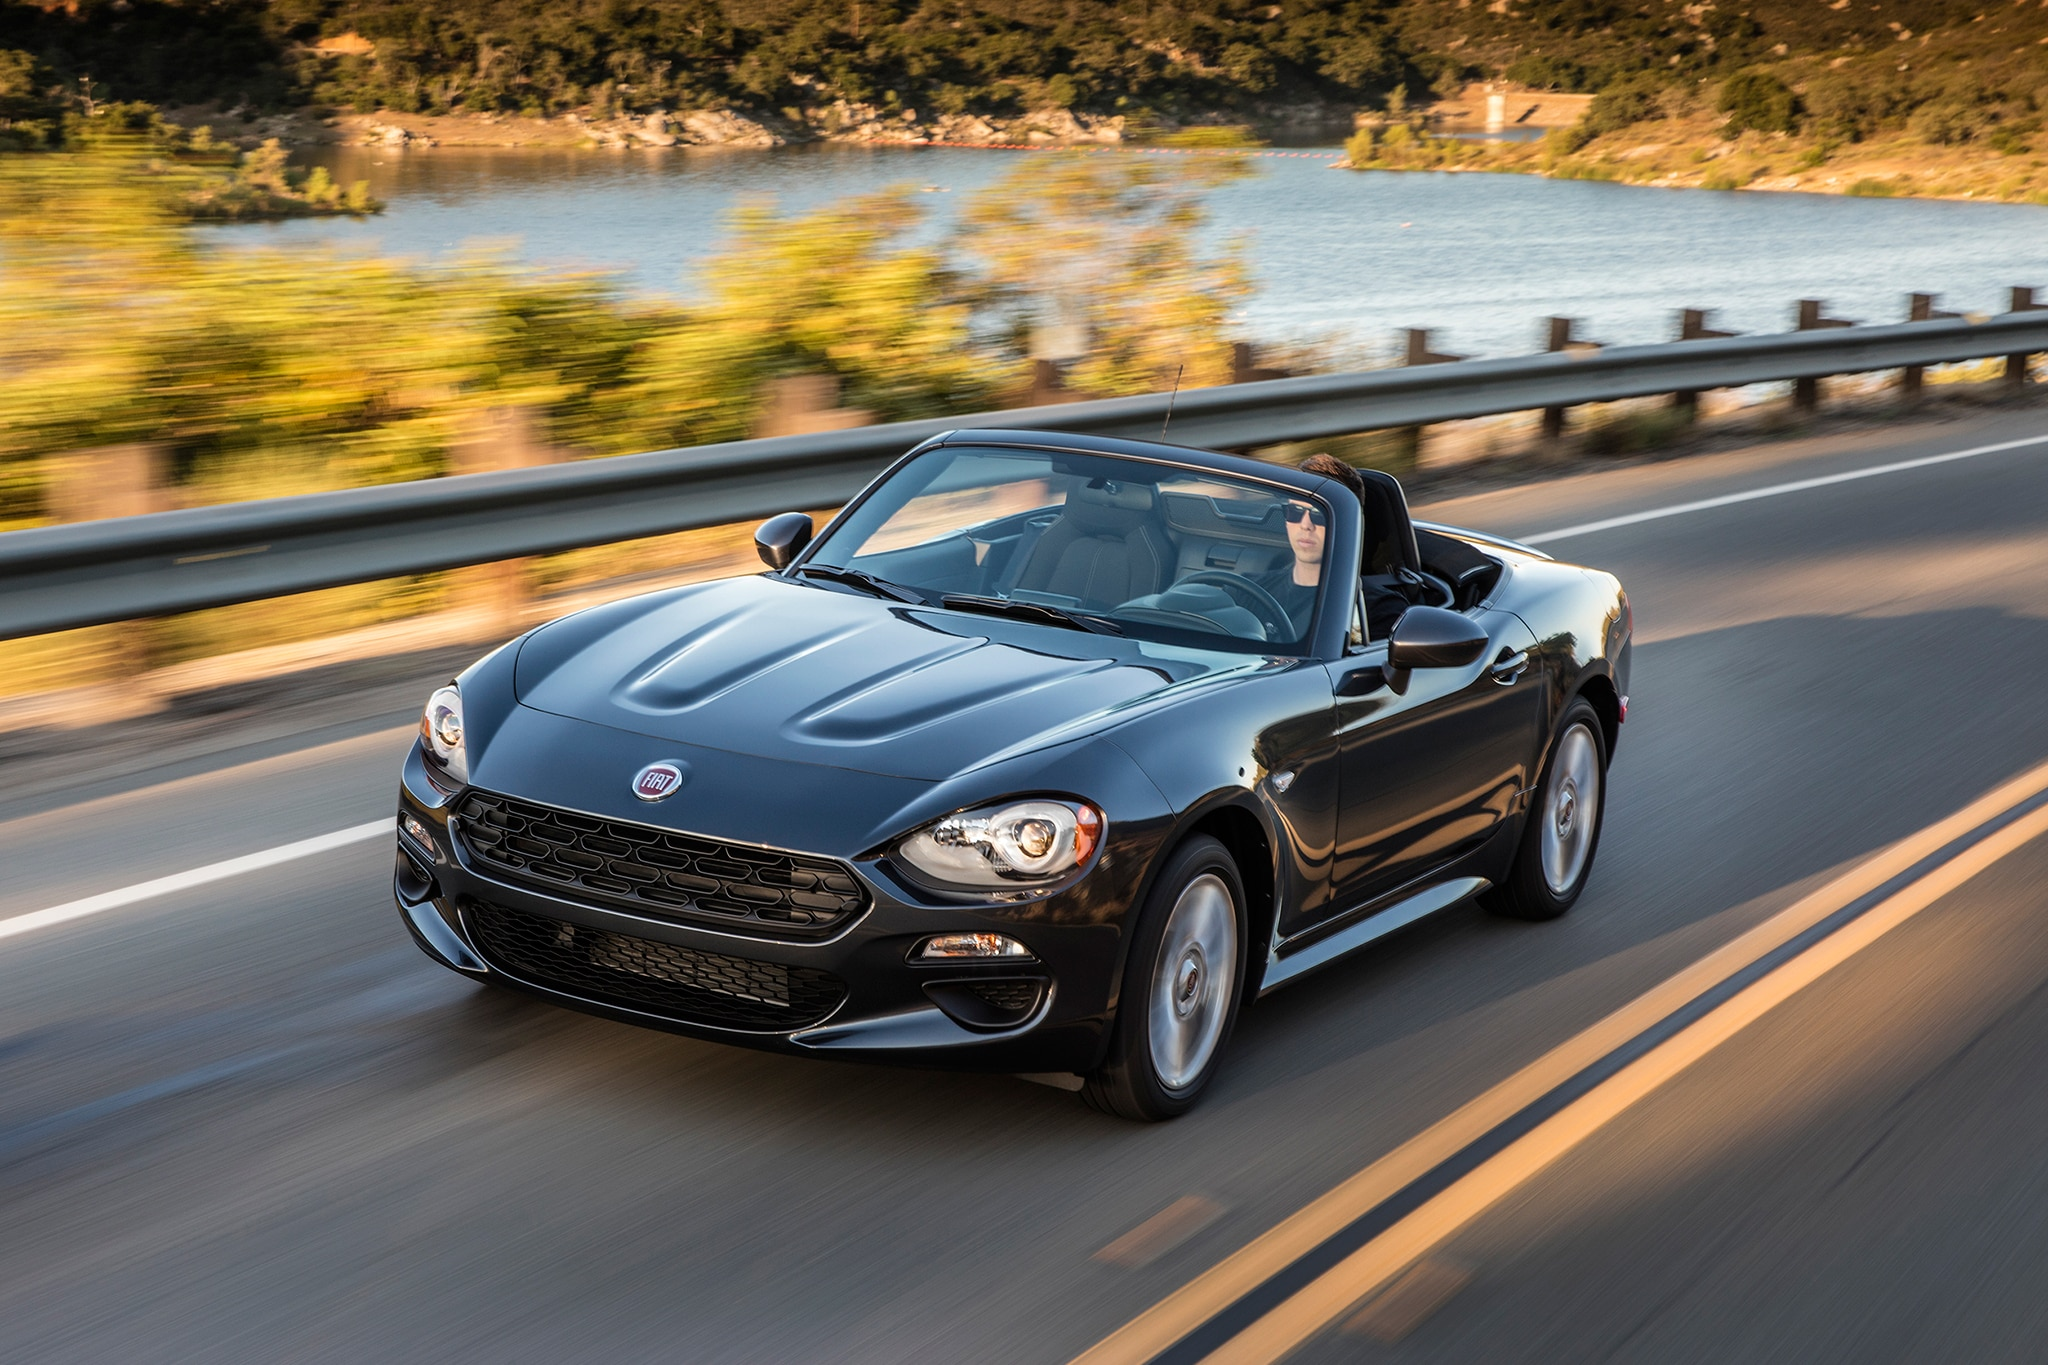 2017 fiat 124 spider classica front three quarter in motion 02 automobile. Black Bedroom Furniture Sets. Home Design Ideas